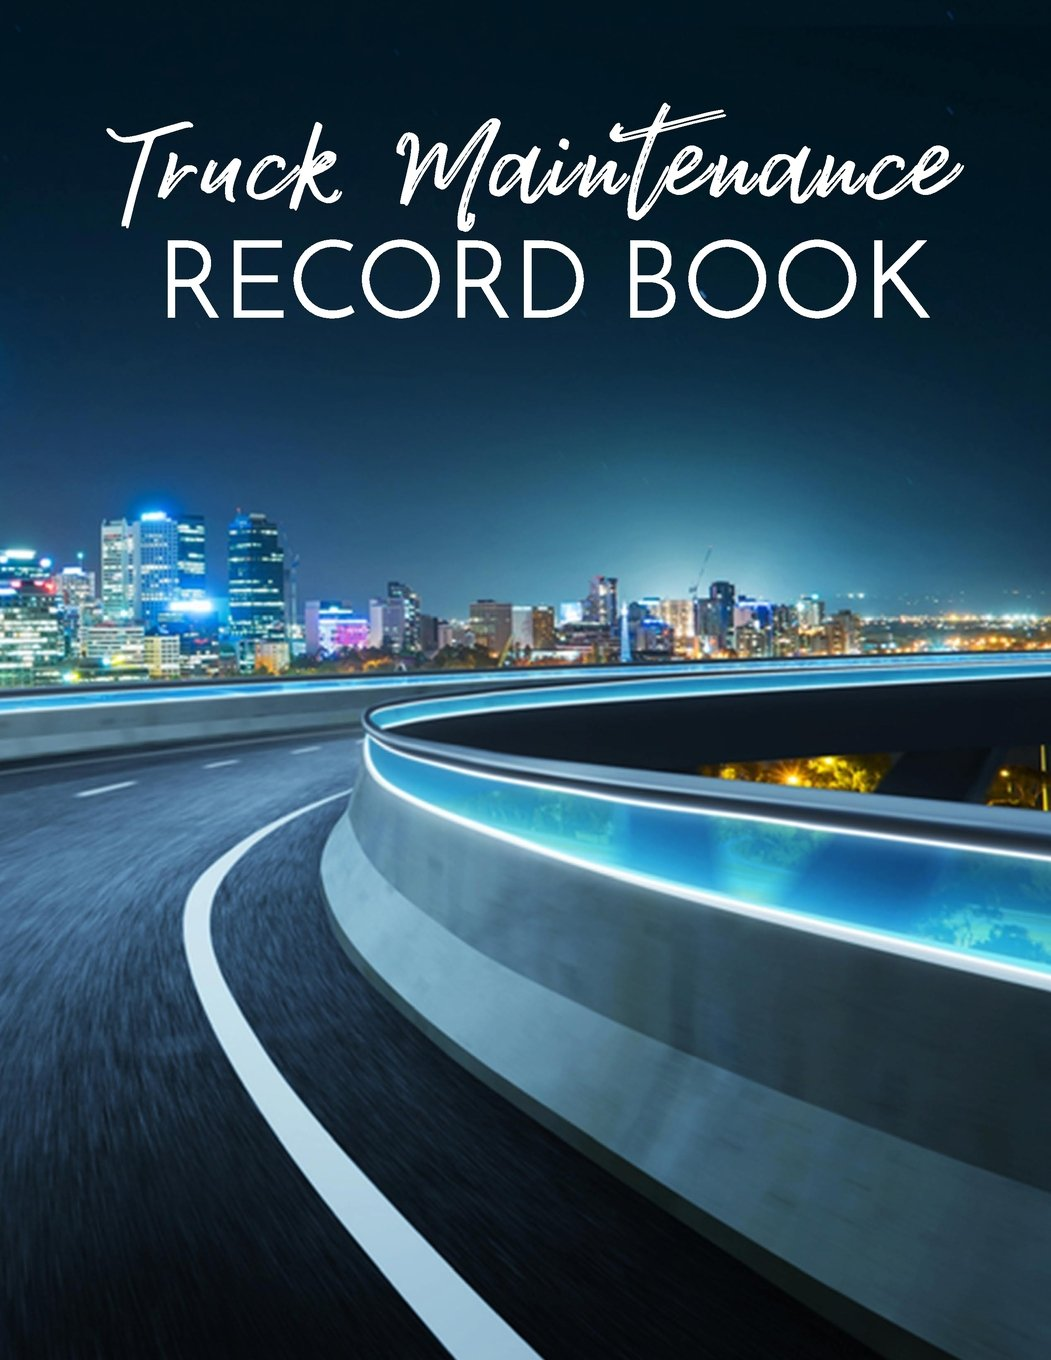 Truck Maintenance Record Book: Truck Repair Log Book Journal (Date, Type of Repairs, Maintenance & Mileage)(8.5 x 11) V1